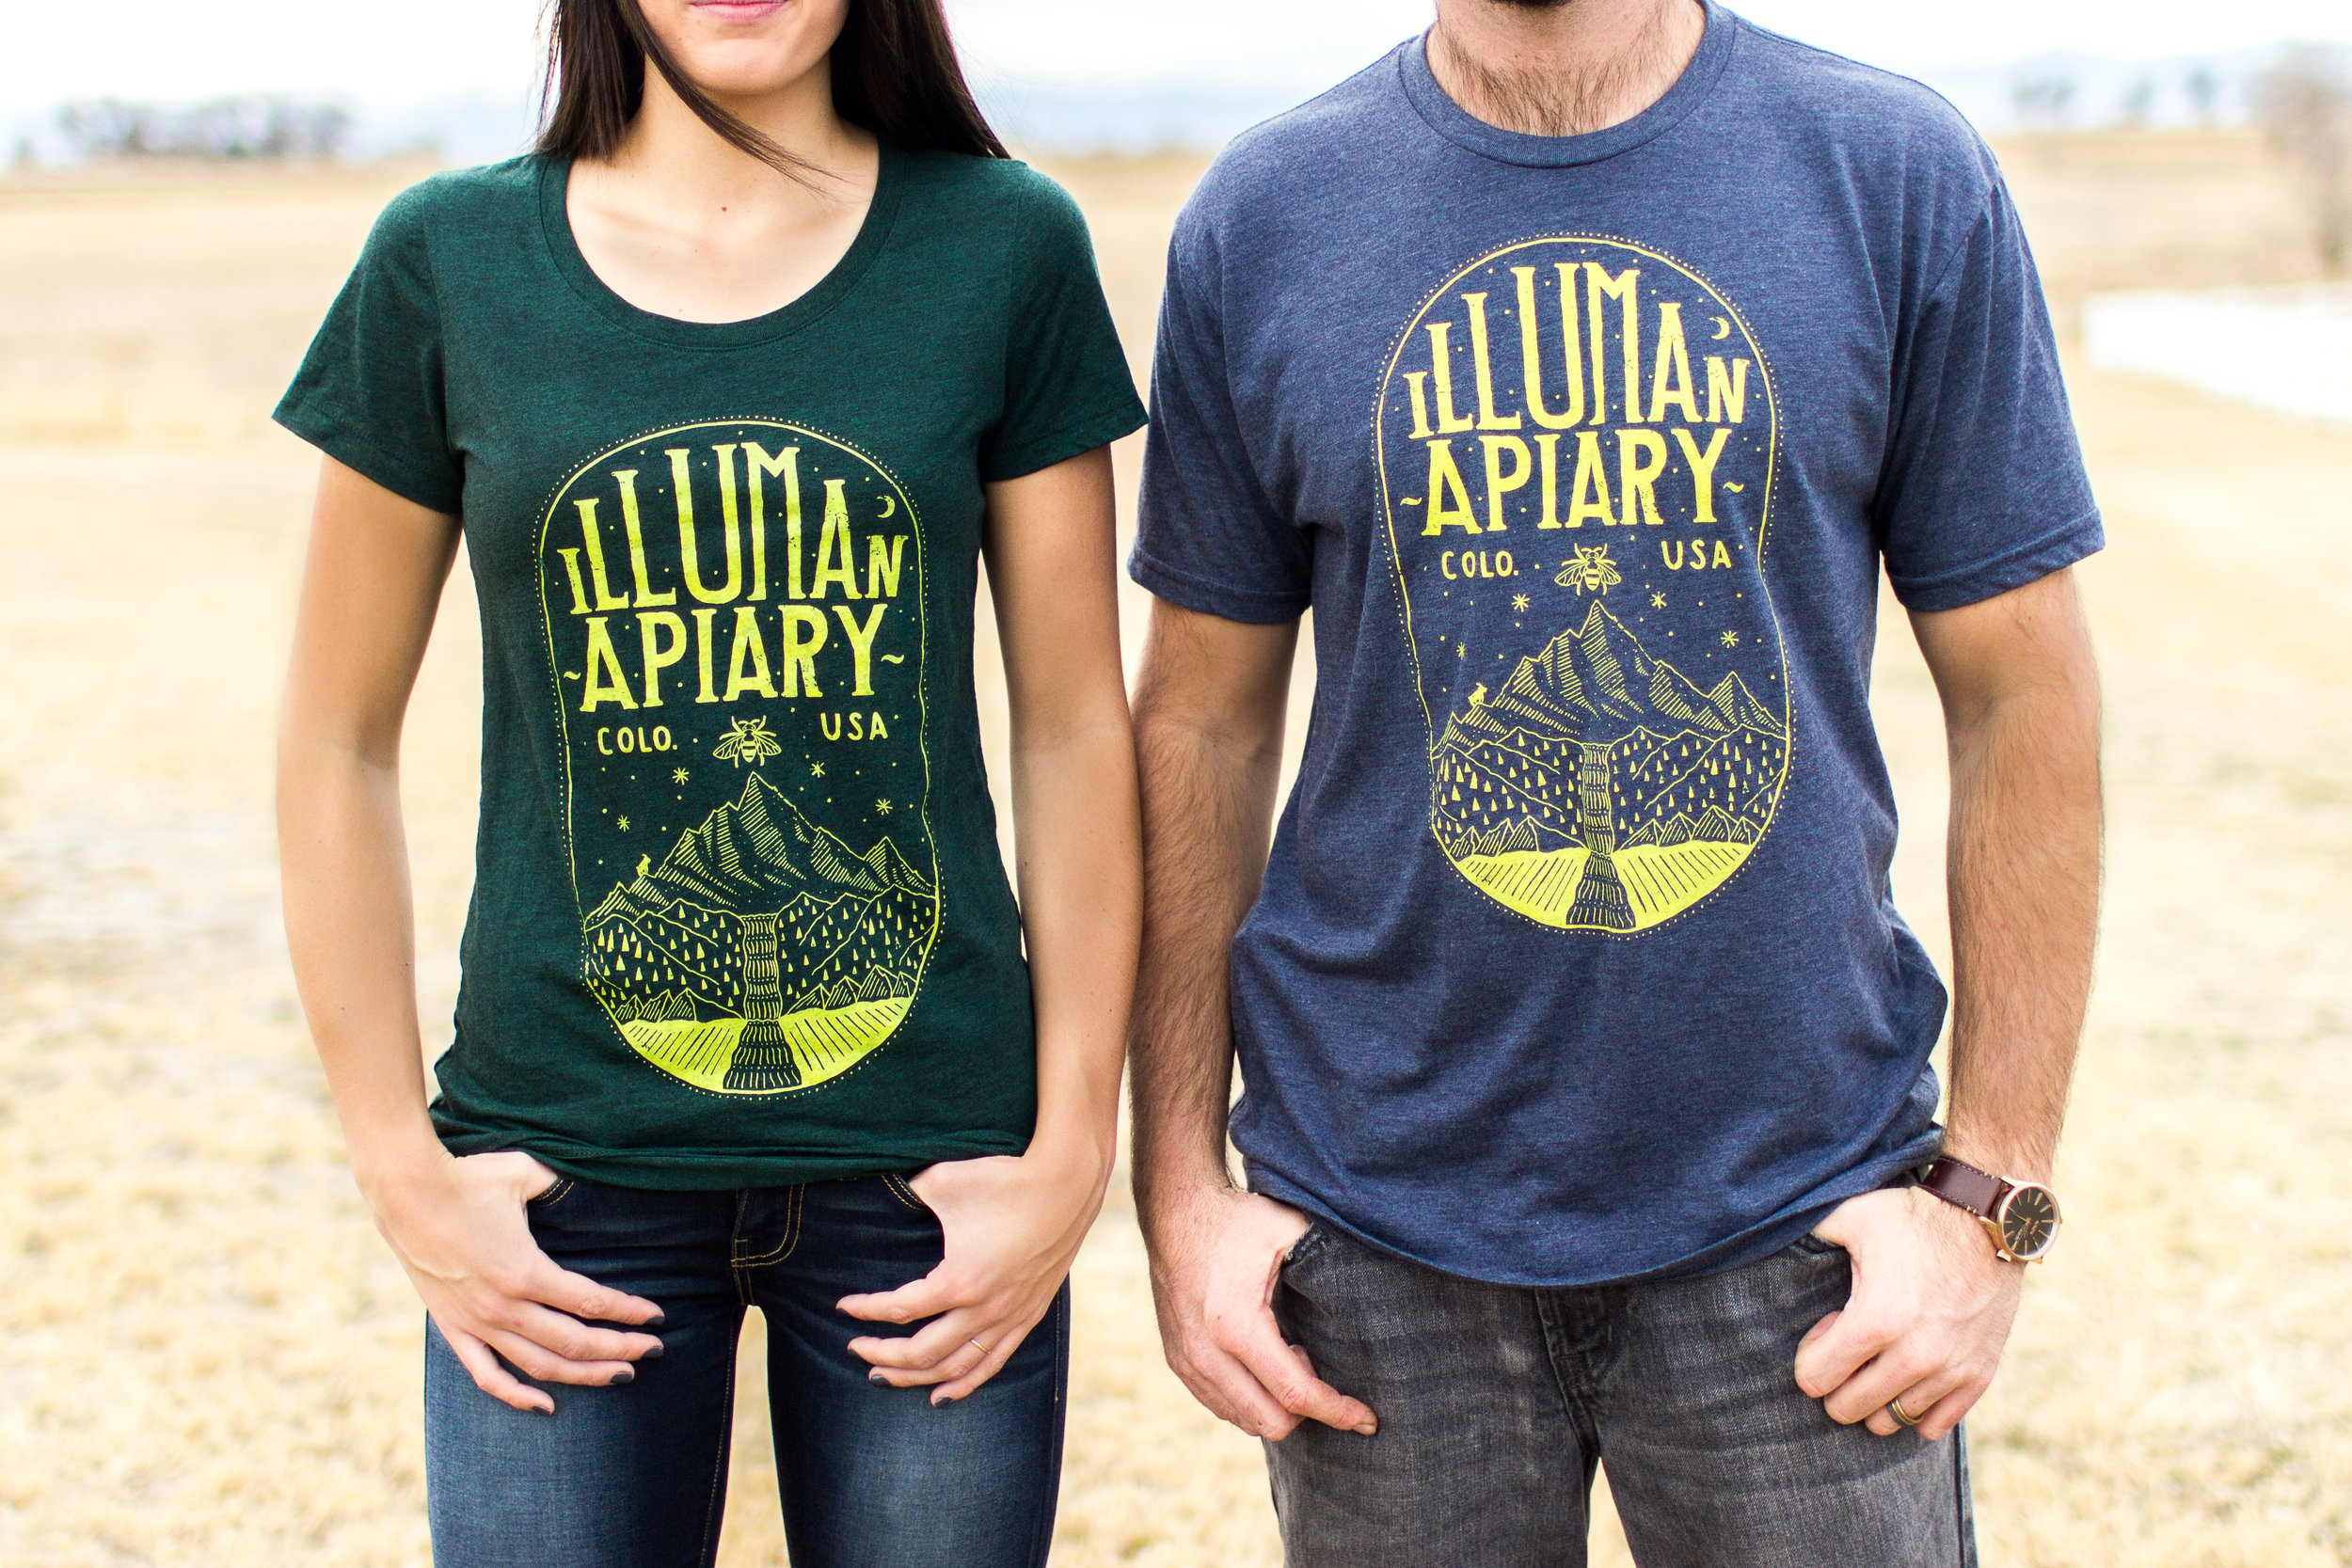 Tri-blend Eco Friendly T-Shirts with a mission